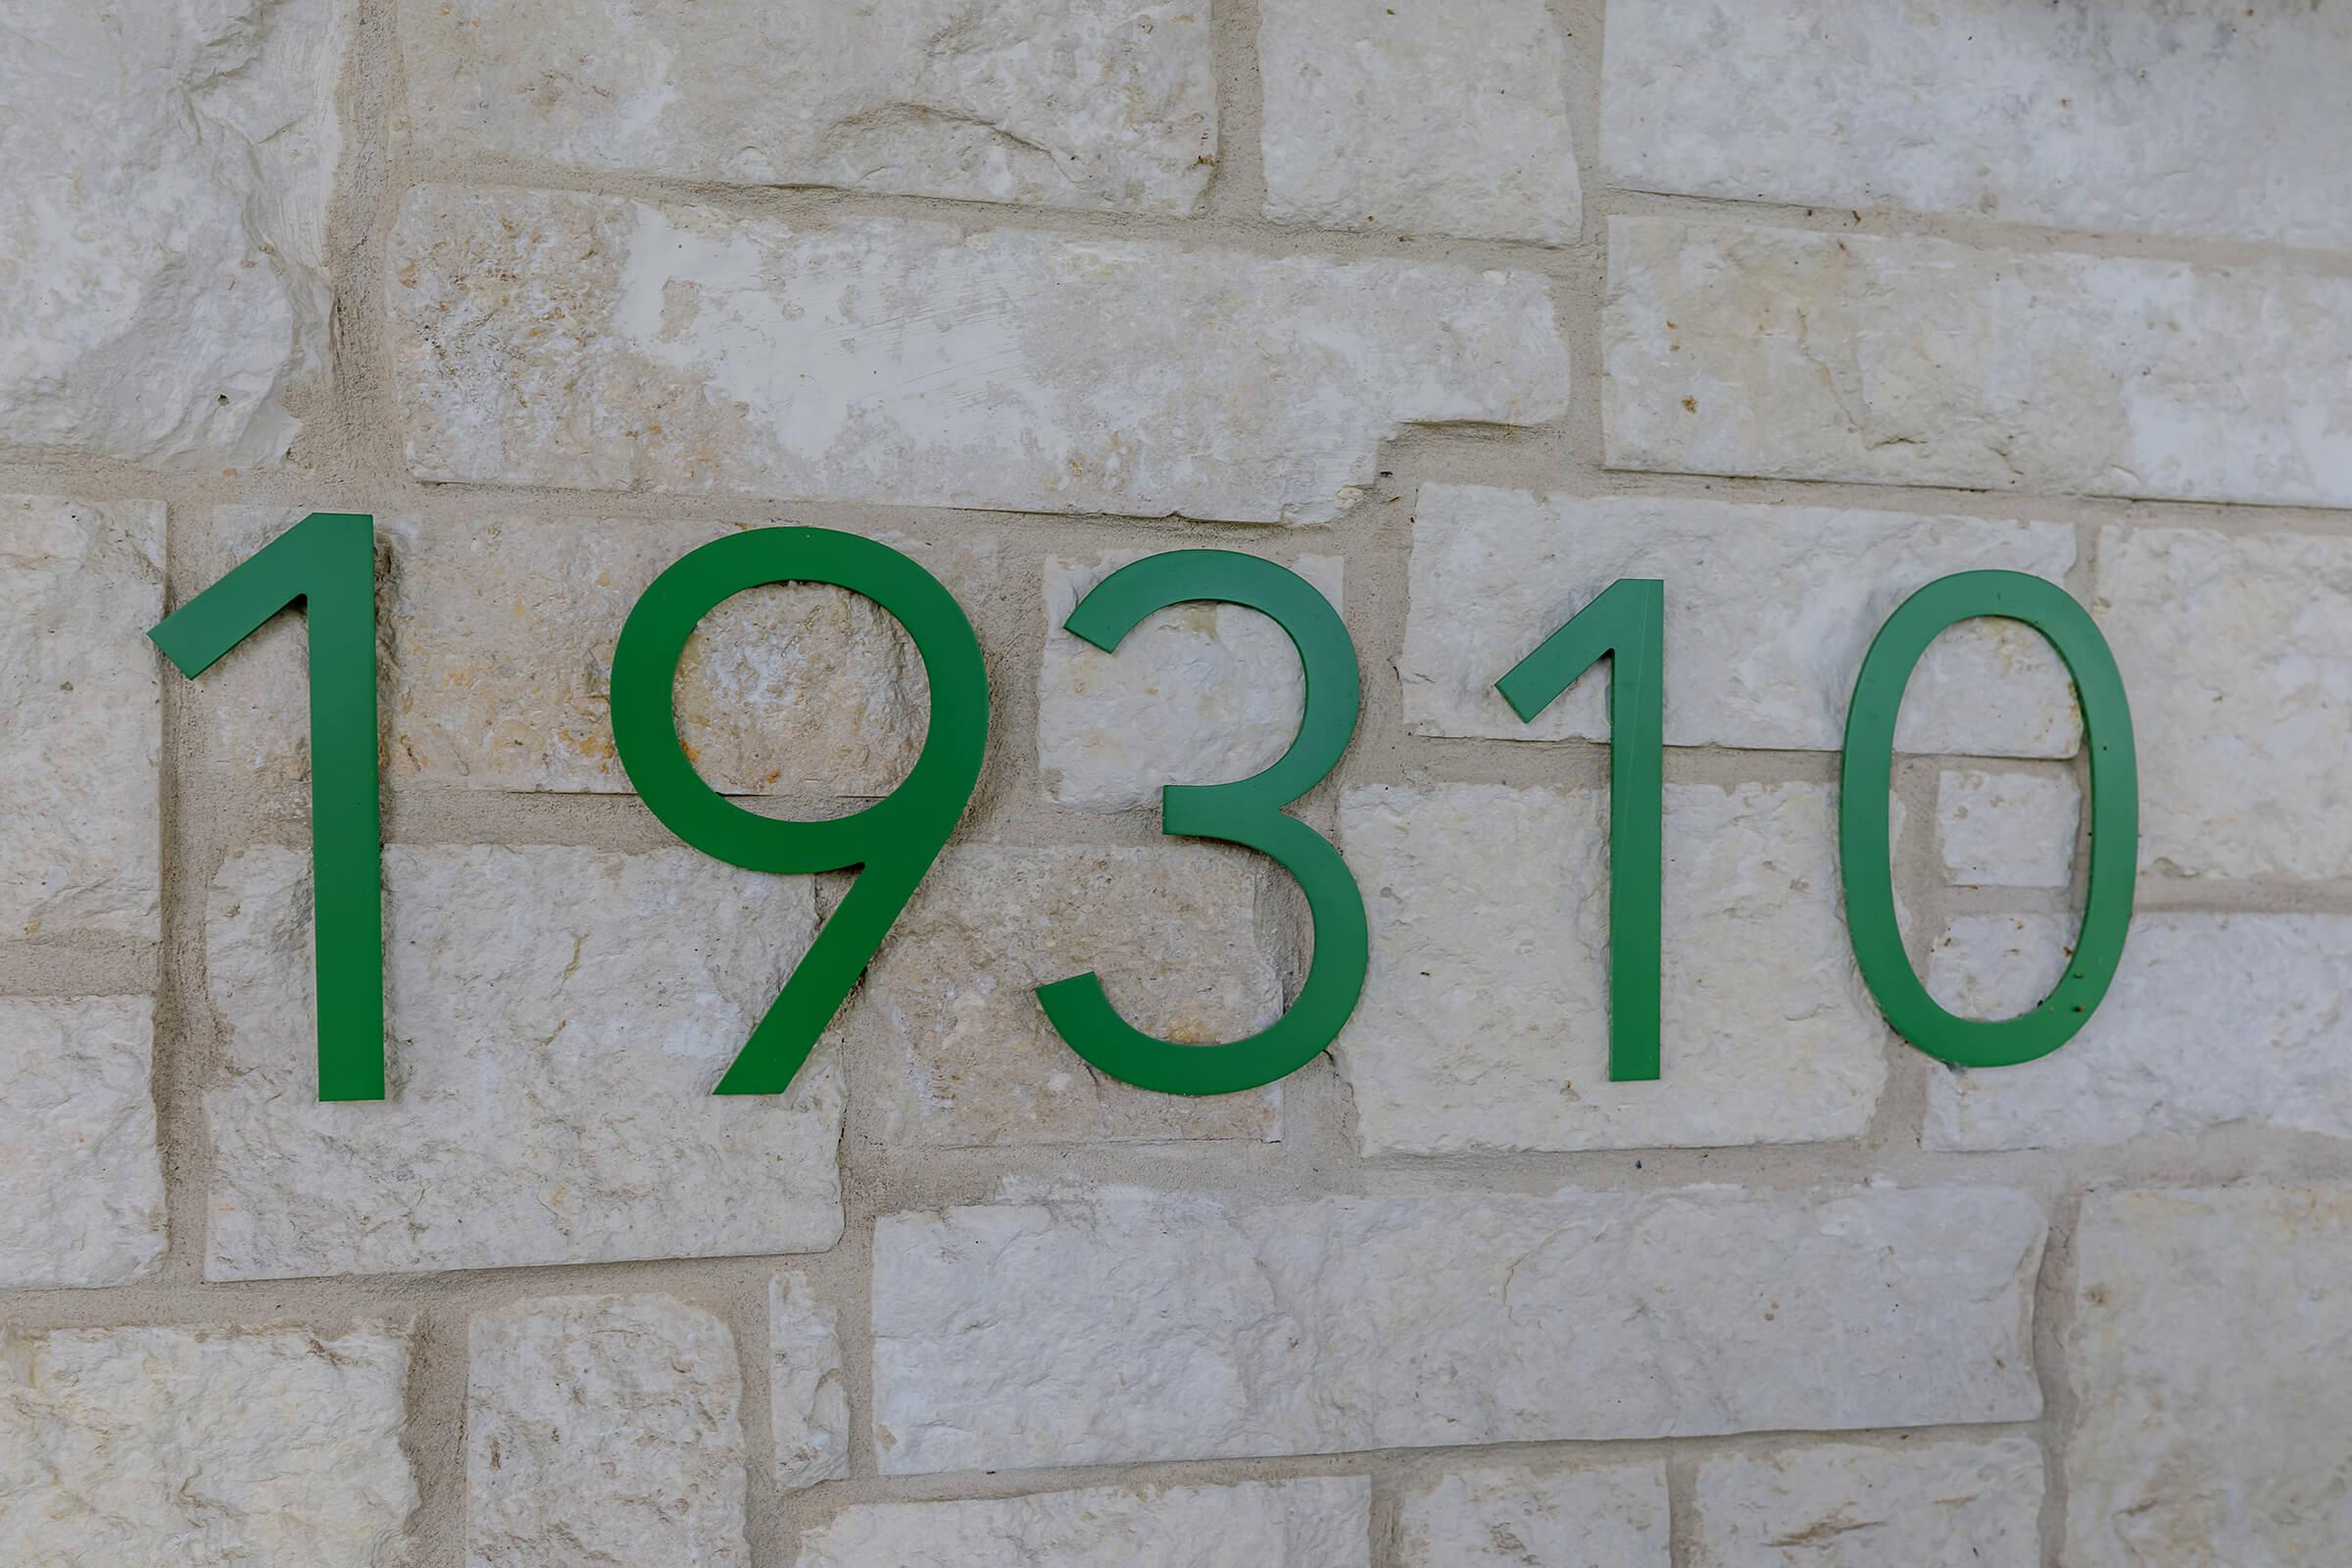 a sign on the side of a building